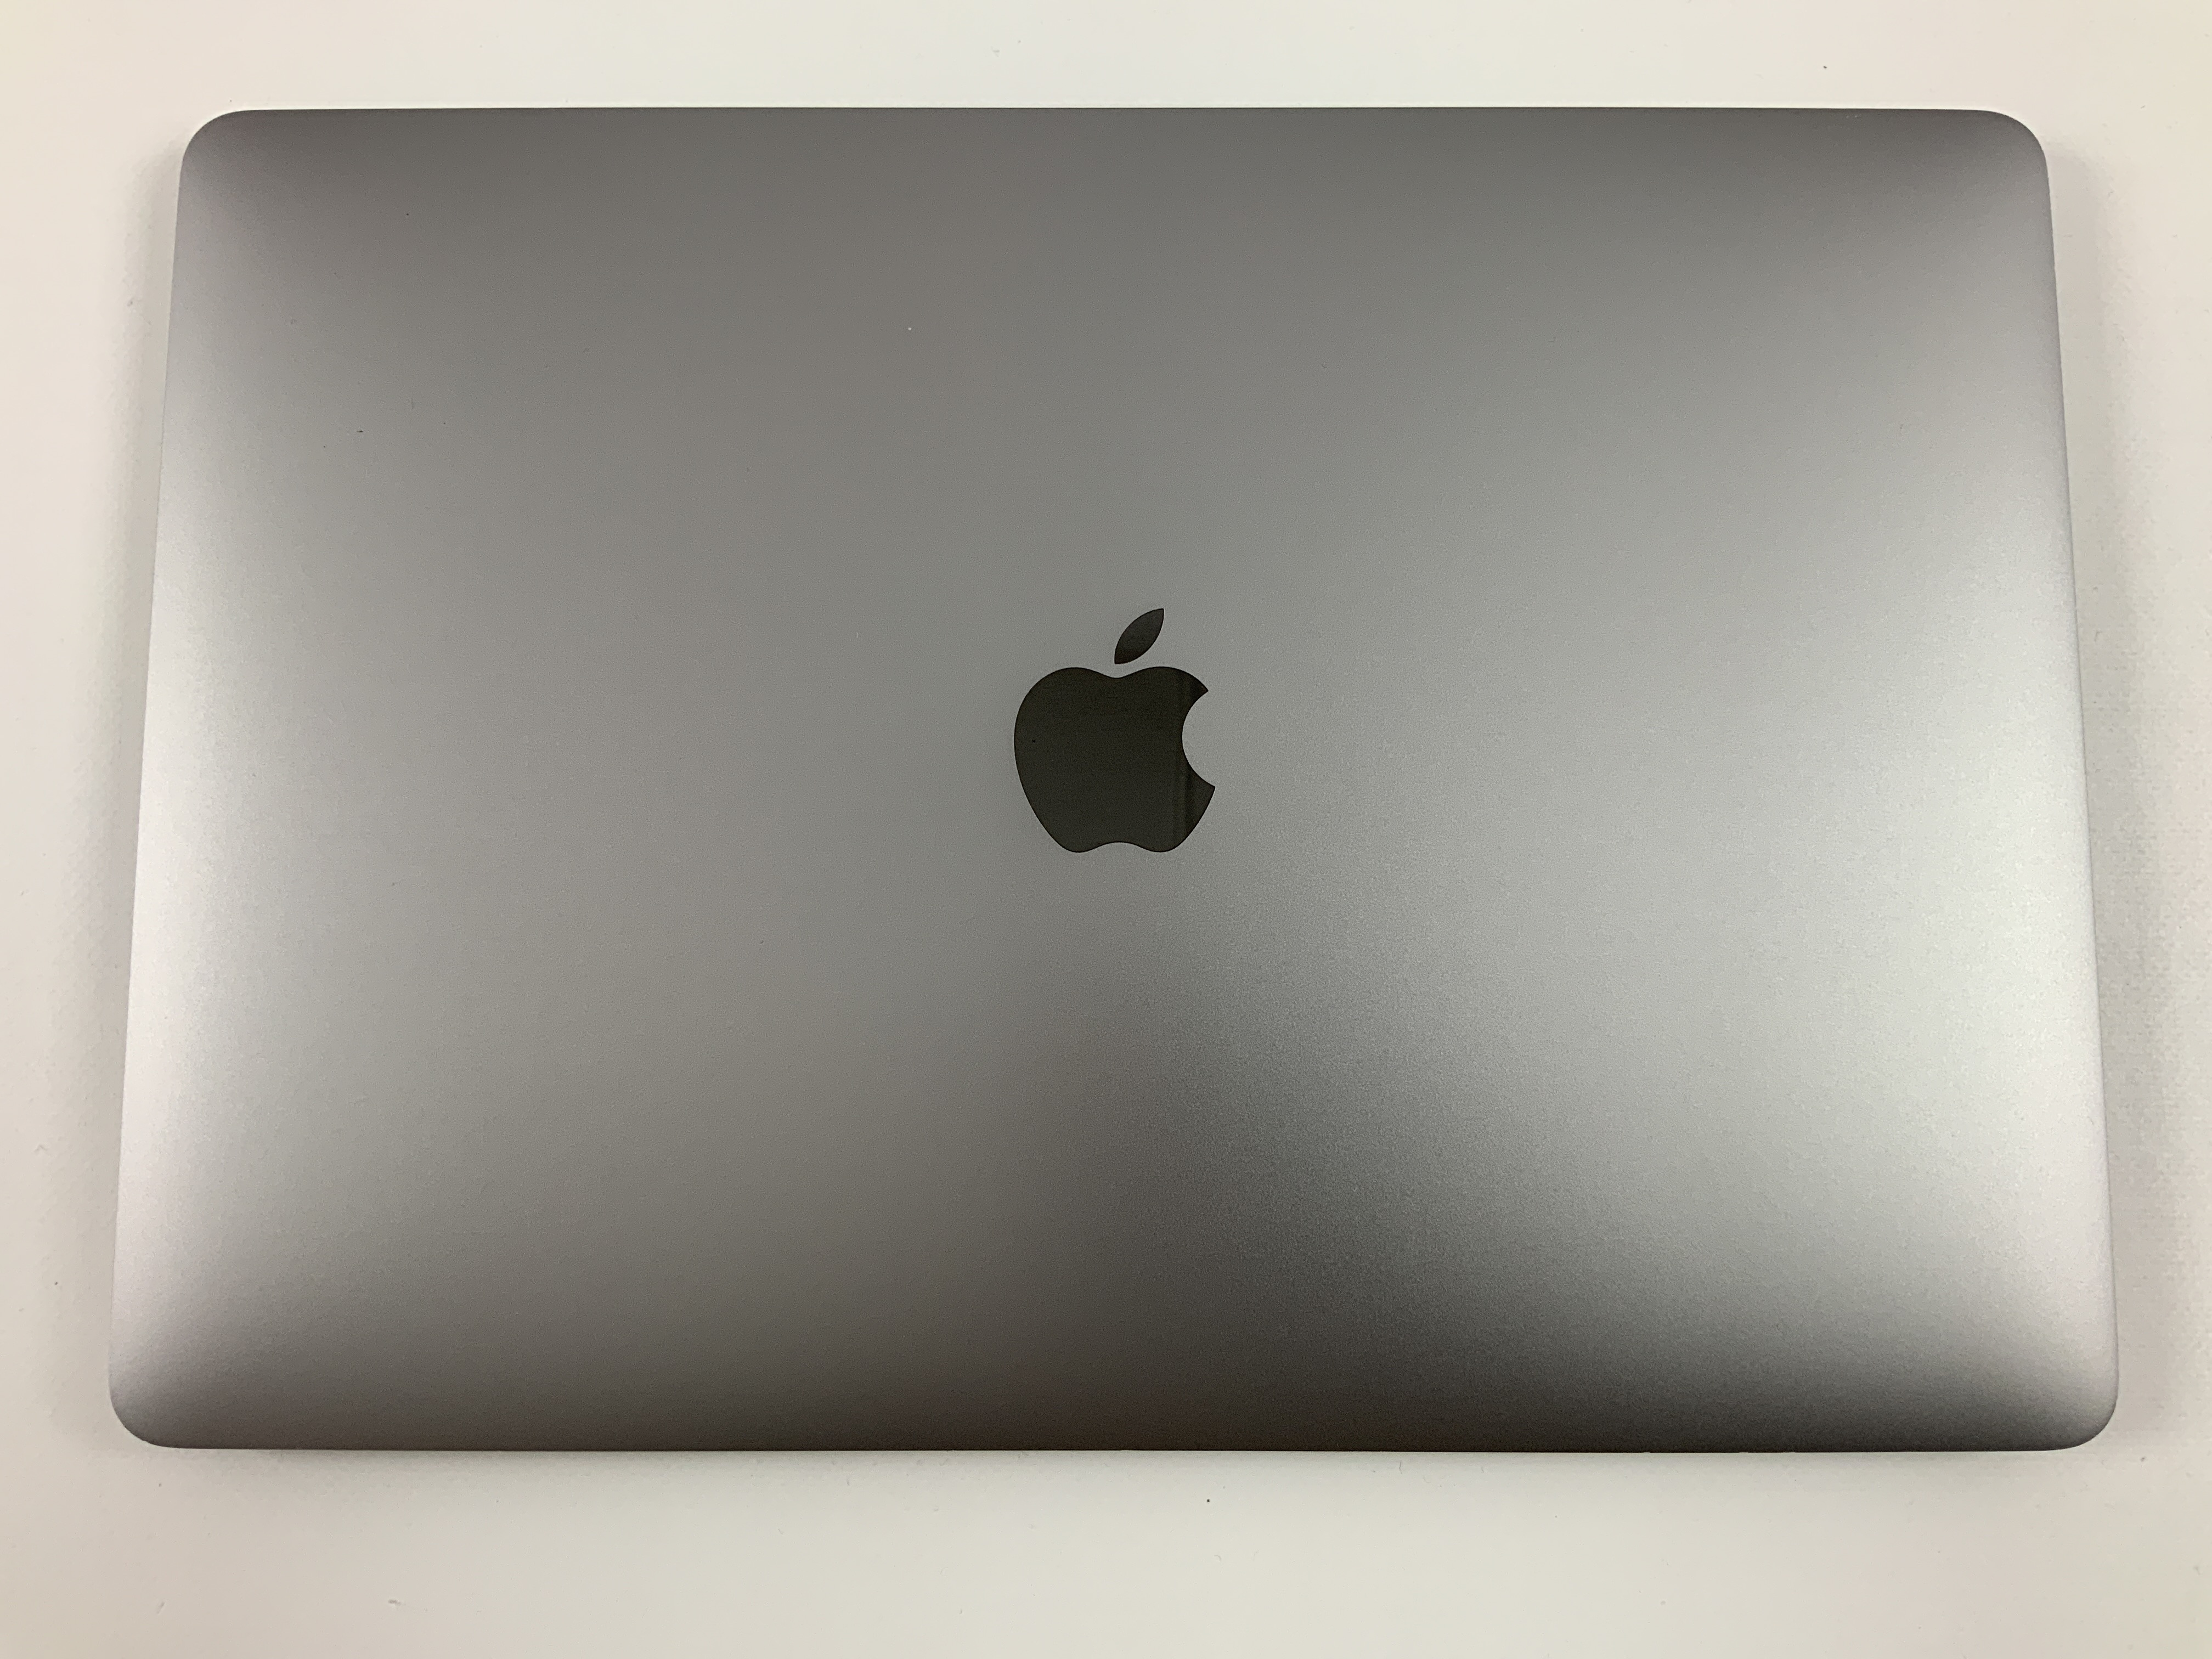 "MacBook Pro 13"" 2TBT Mid 2017 (Intel Core i5 2.3 GHz 8 GB RAM 128 GB SSD), Space Gray, Intel Core i5 2.3 GHz, 8 GB RAM, 128 GB SSD, Afbeelding 2"